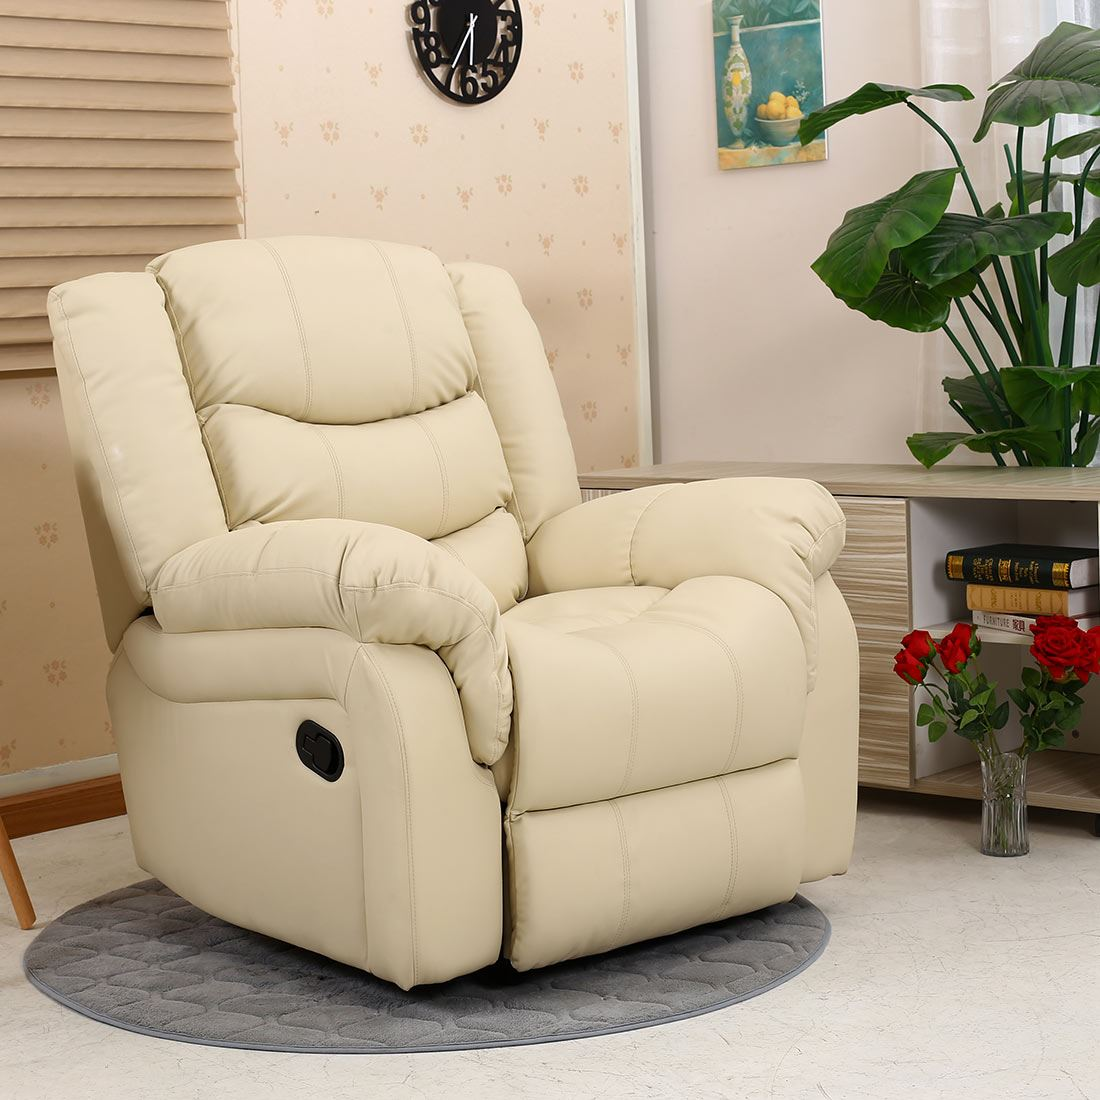 Details about SEATTLE LEATHER RECLINER ARMCHAIR SOFA HOME LOUNGE CHAIR RECLINING GAMING